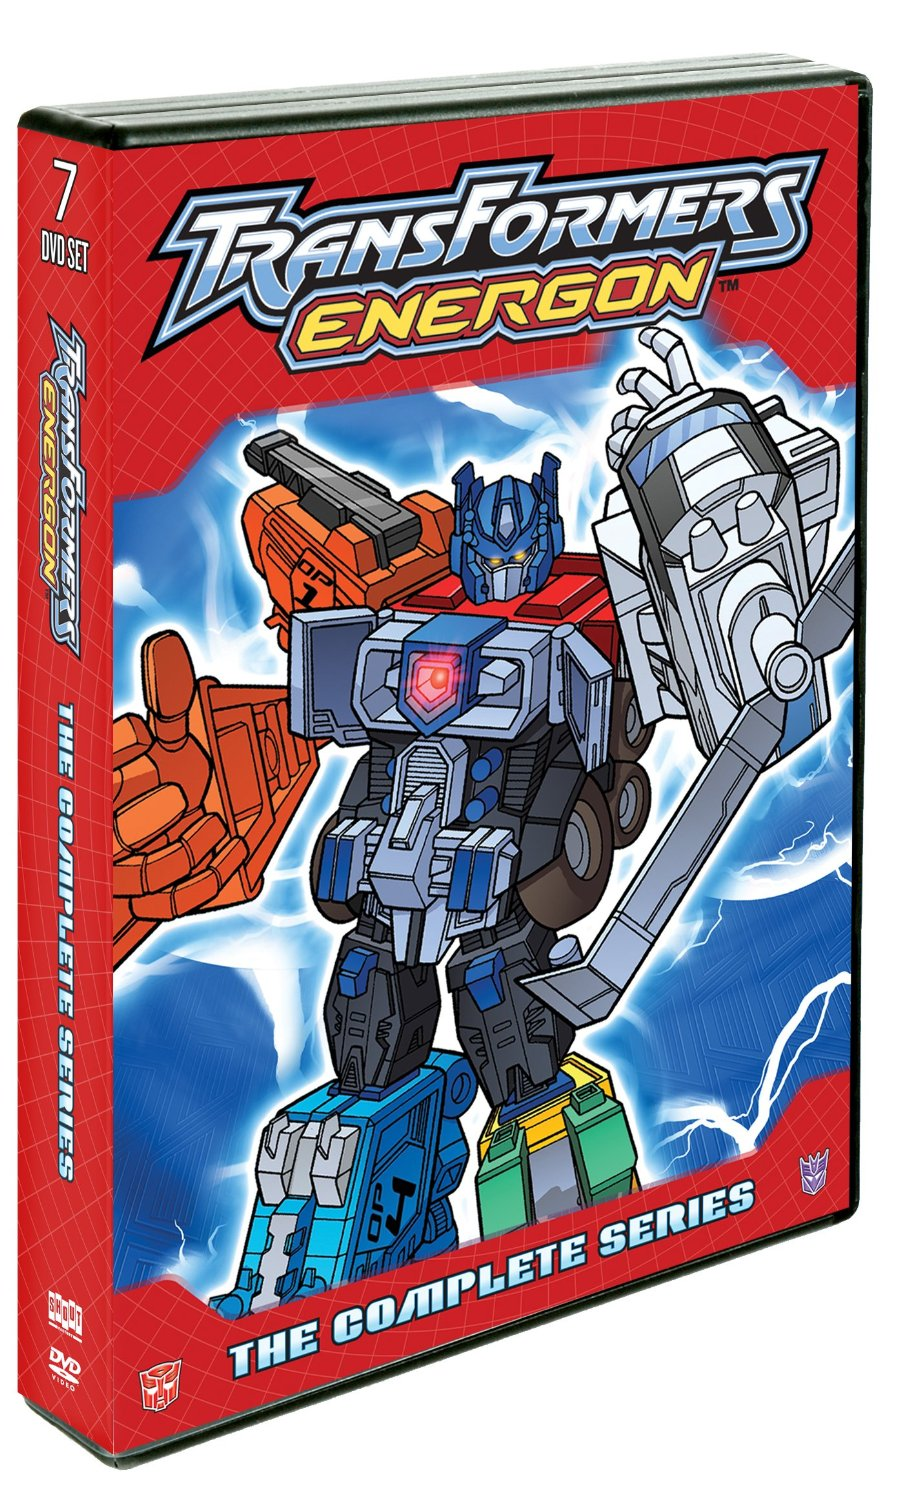 Transformers News: TRANSFORMERS ENERGON: The Complete Series 7-DVD set debuts on home entertainment shelves May 6, 2014